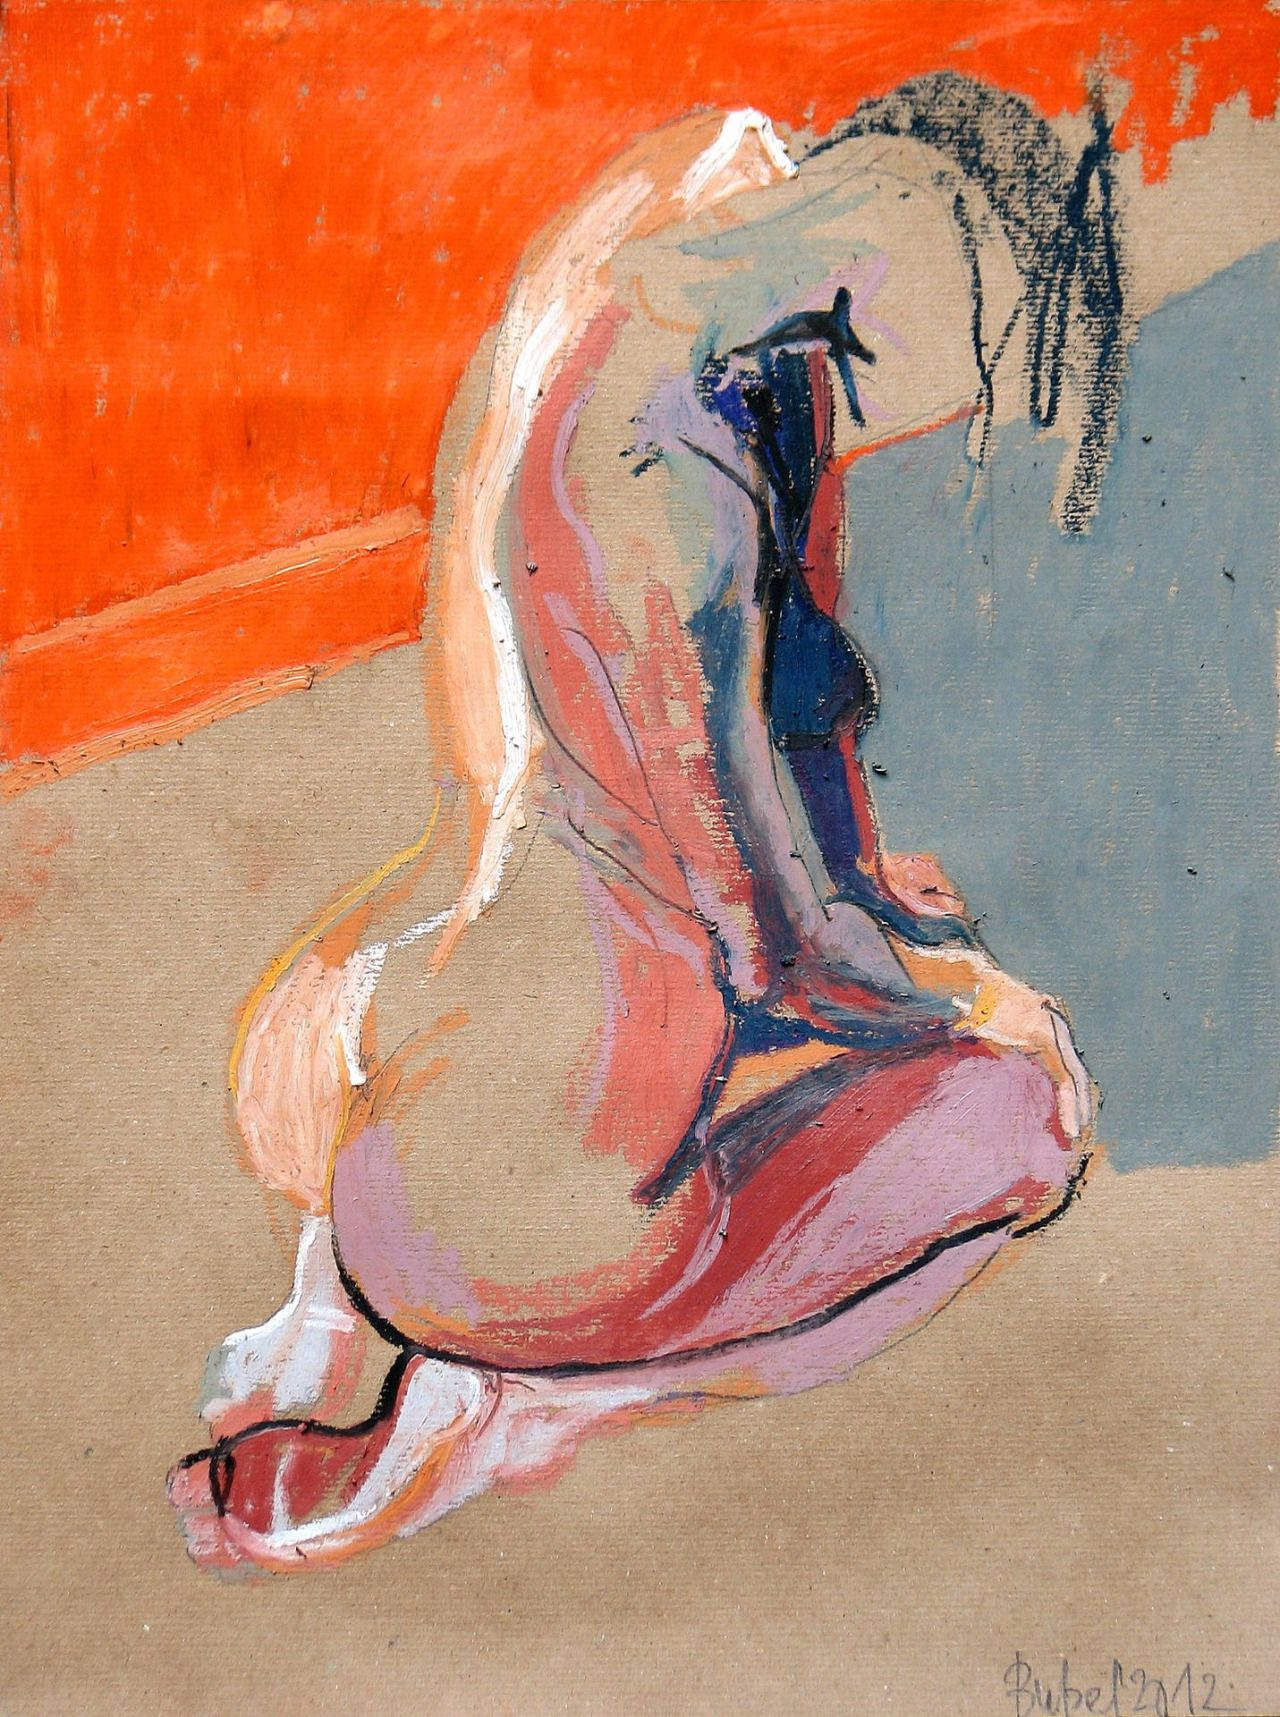 """red-lipstick: """" Robert Bubel (Polish, b. 1968, Zarki, Poland) - For F.Bacon. The Nude, 2012 Painting: Oil Pastel on Paper """""""